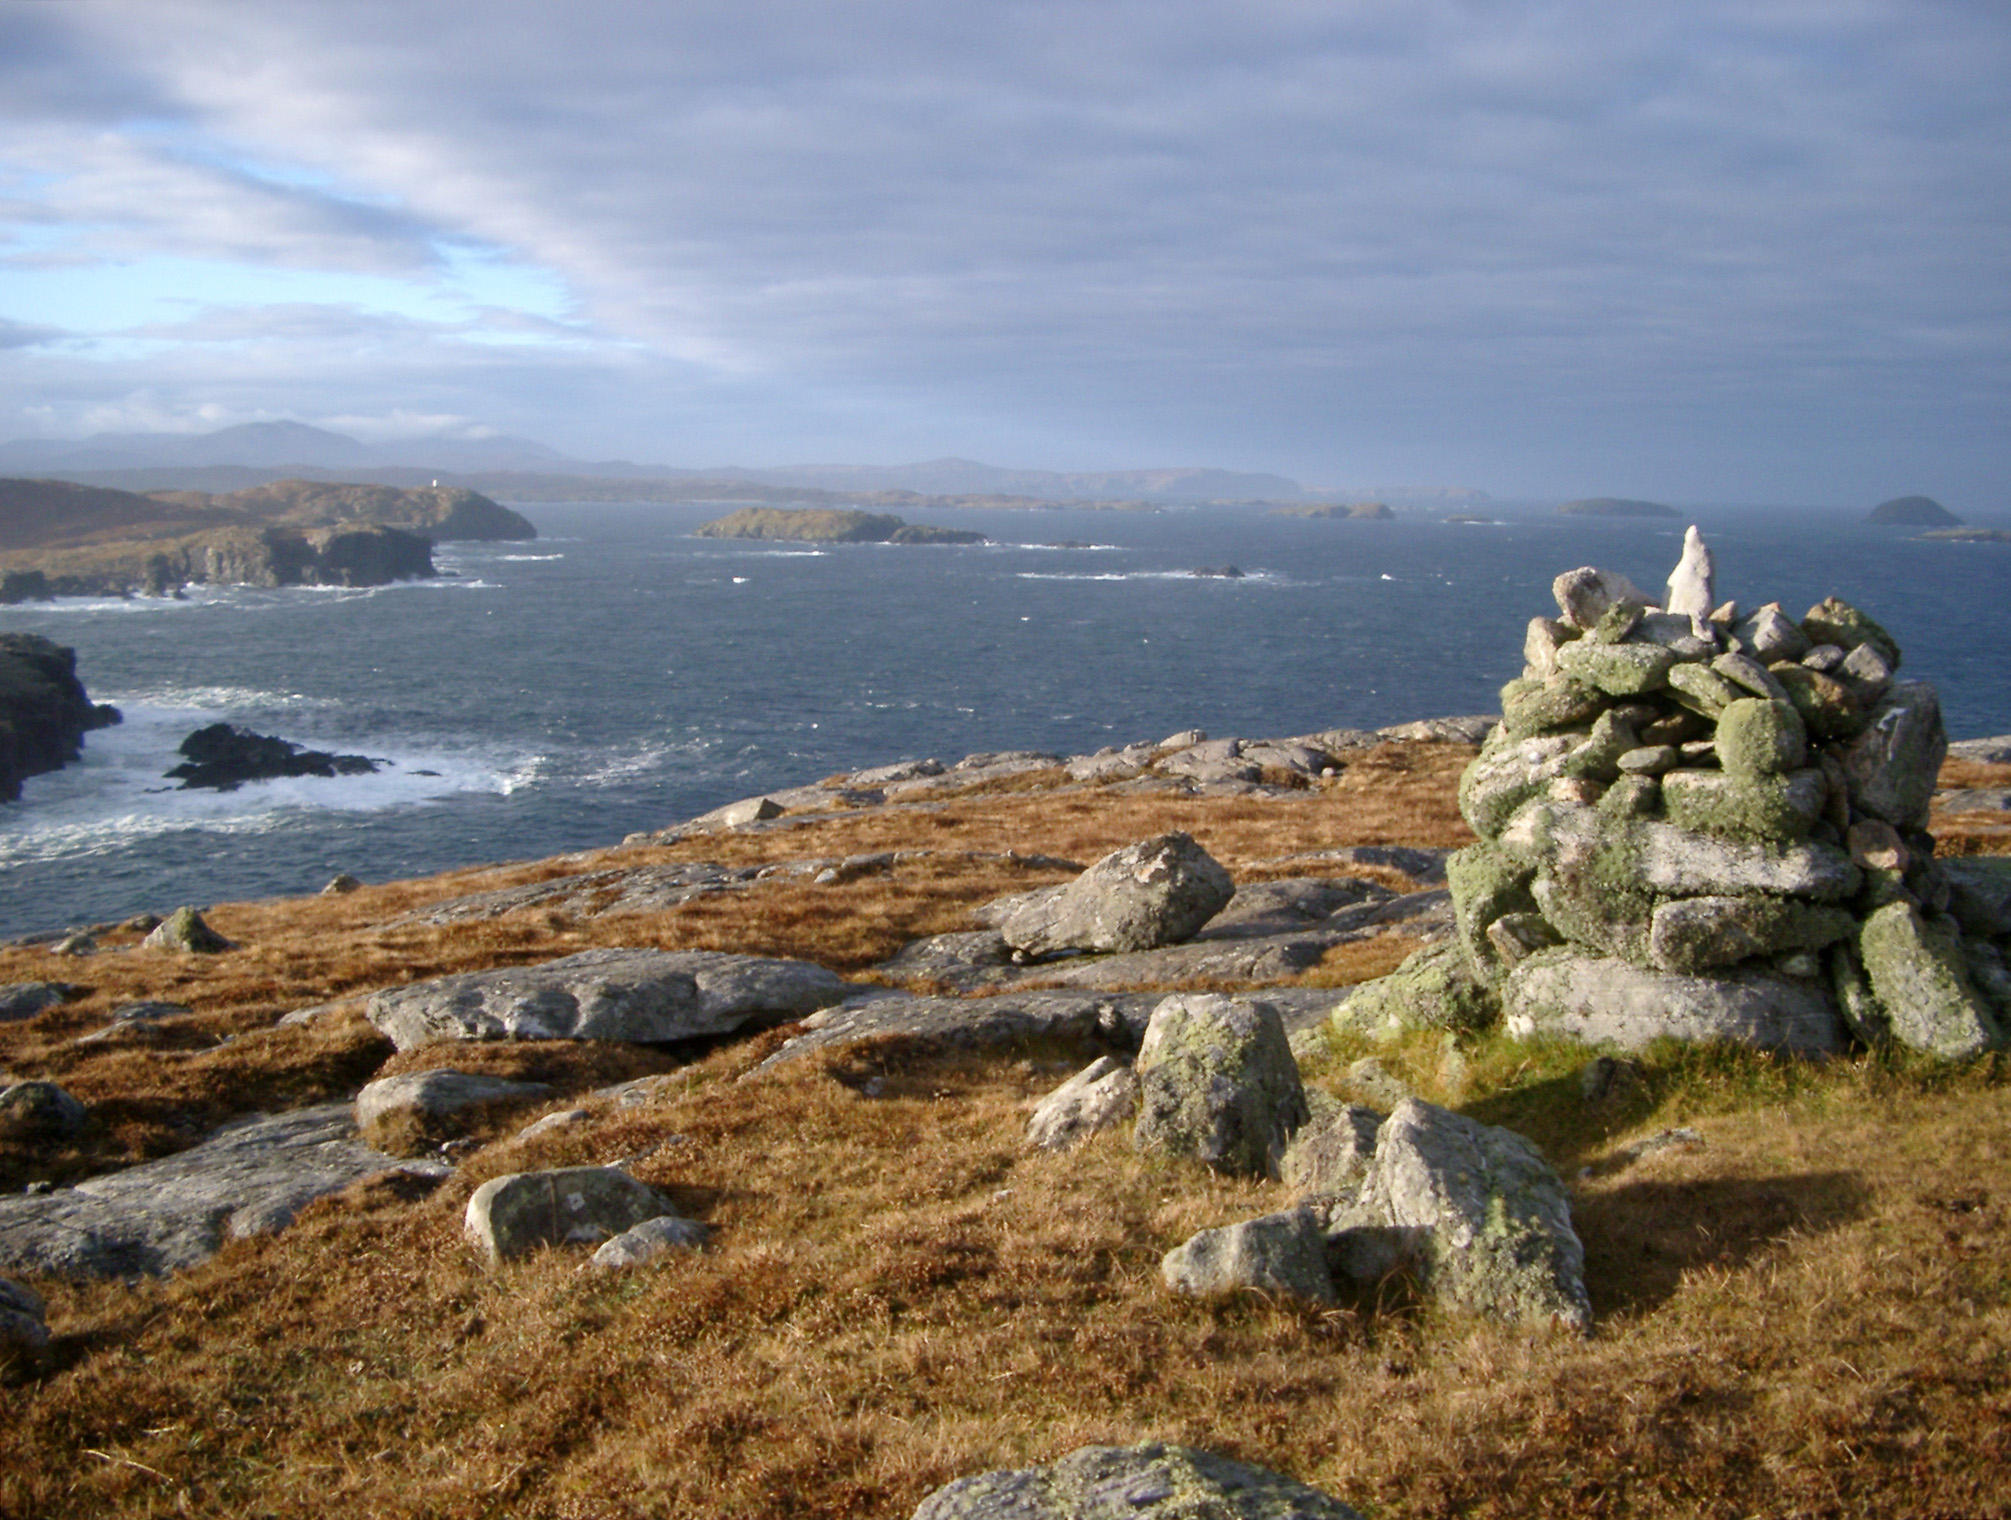 Stone cairn on a coastal headland lookout overlooking the coastline of the Hebrides, Scotland on a stormy day